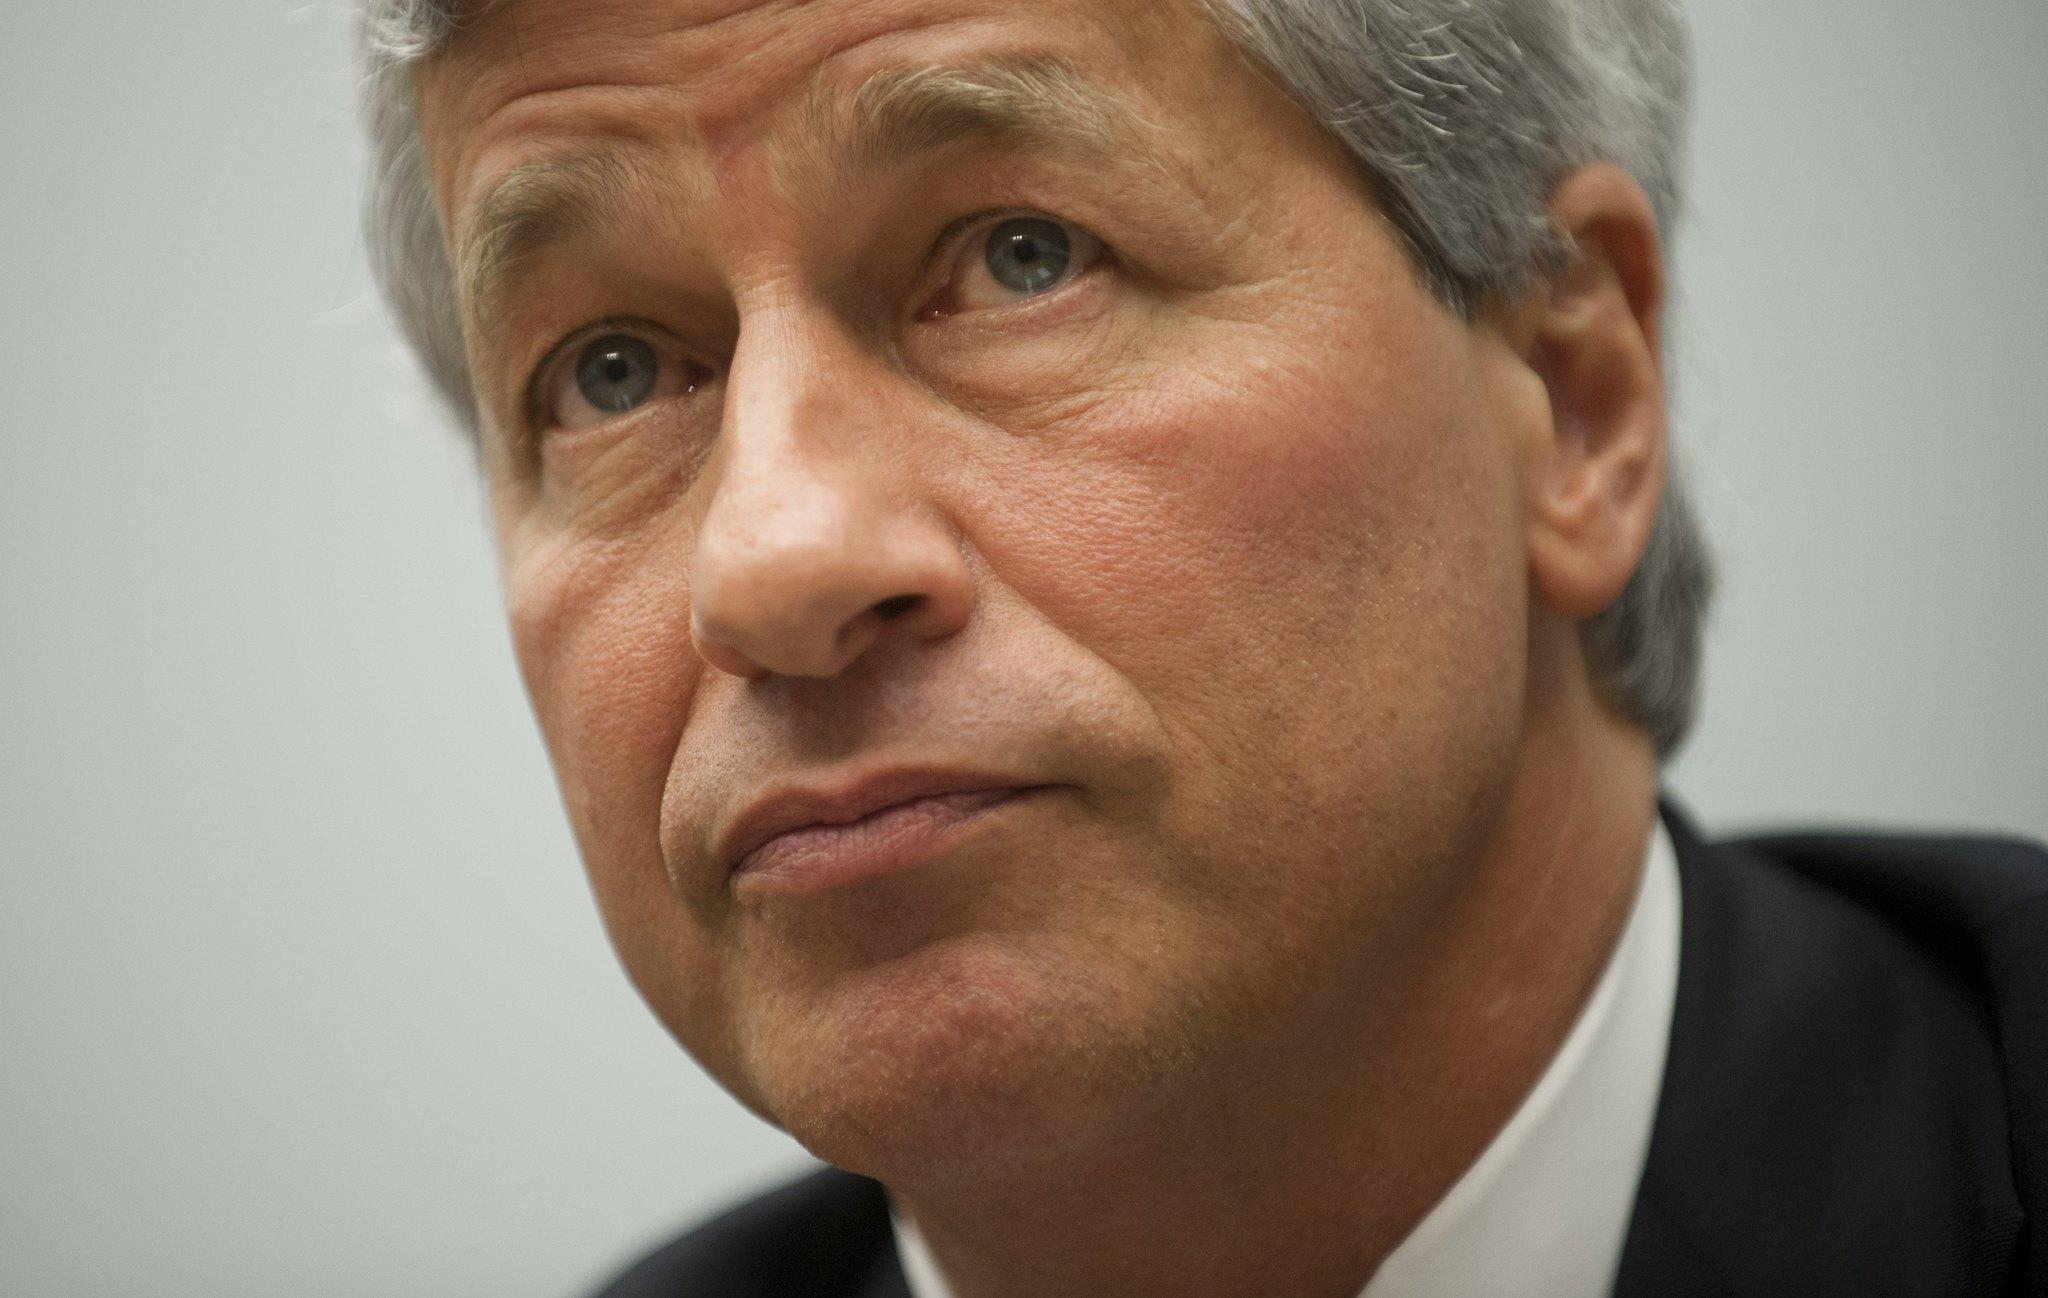 JPMorgan Chase Chairman and CEO Jamie Dimon testifies during a US House Financial Services Committee hearing on Capitol Hill.